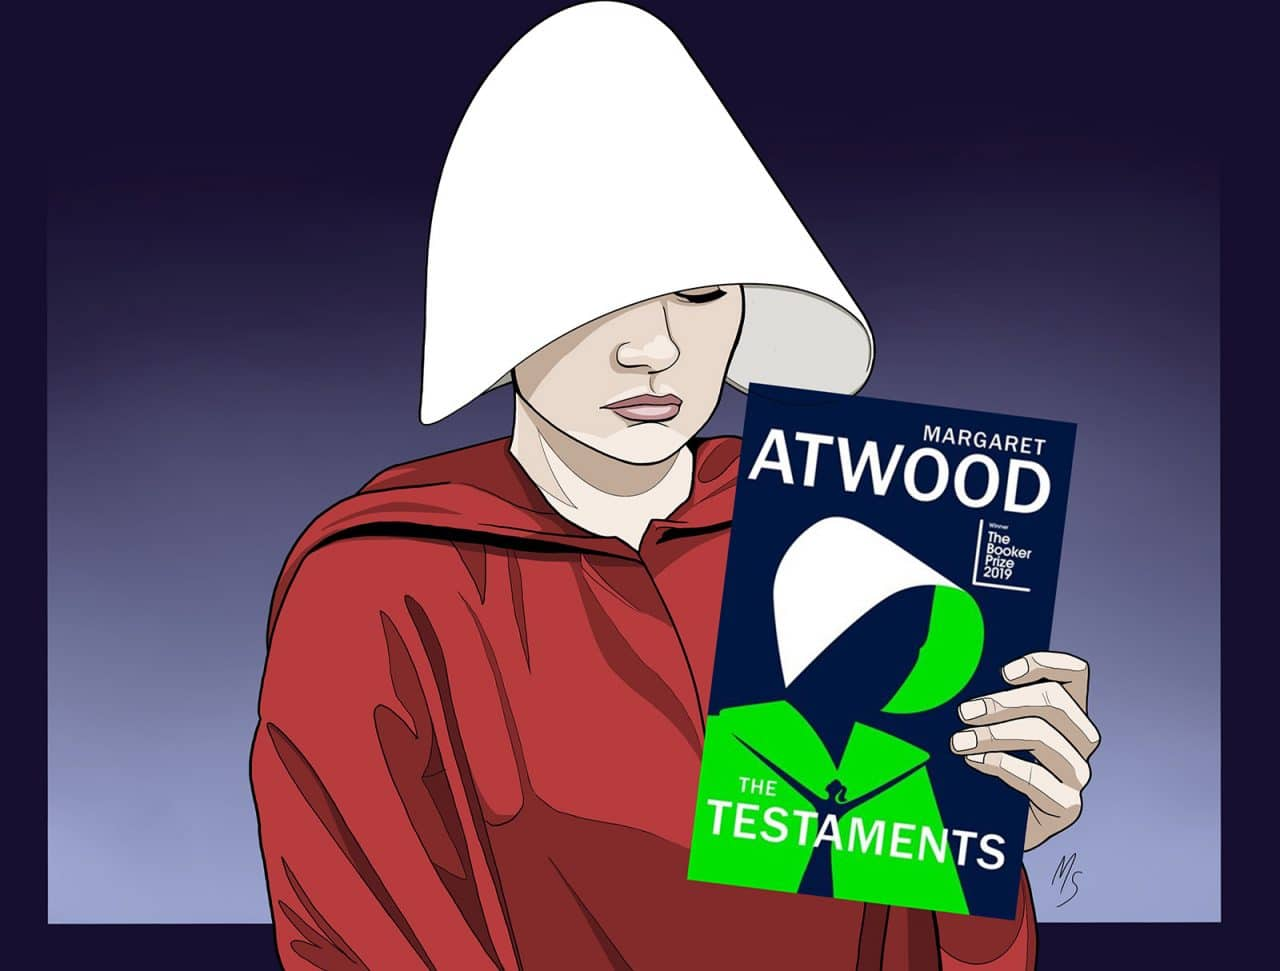 The Testaments is Margaret Atwood's sequel to The Handmaid's Tale